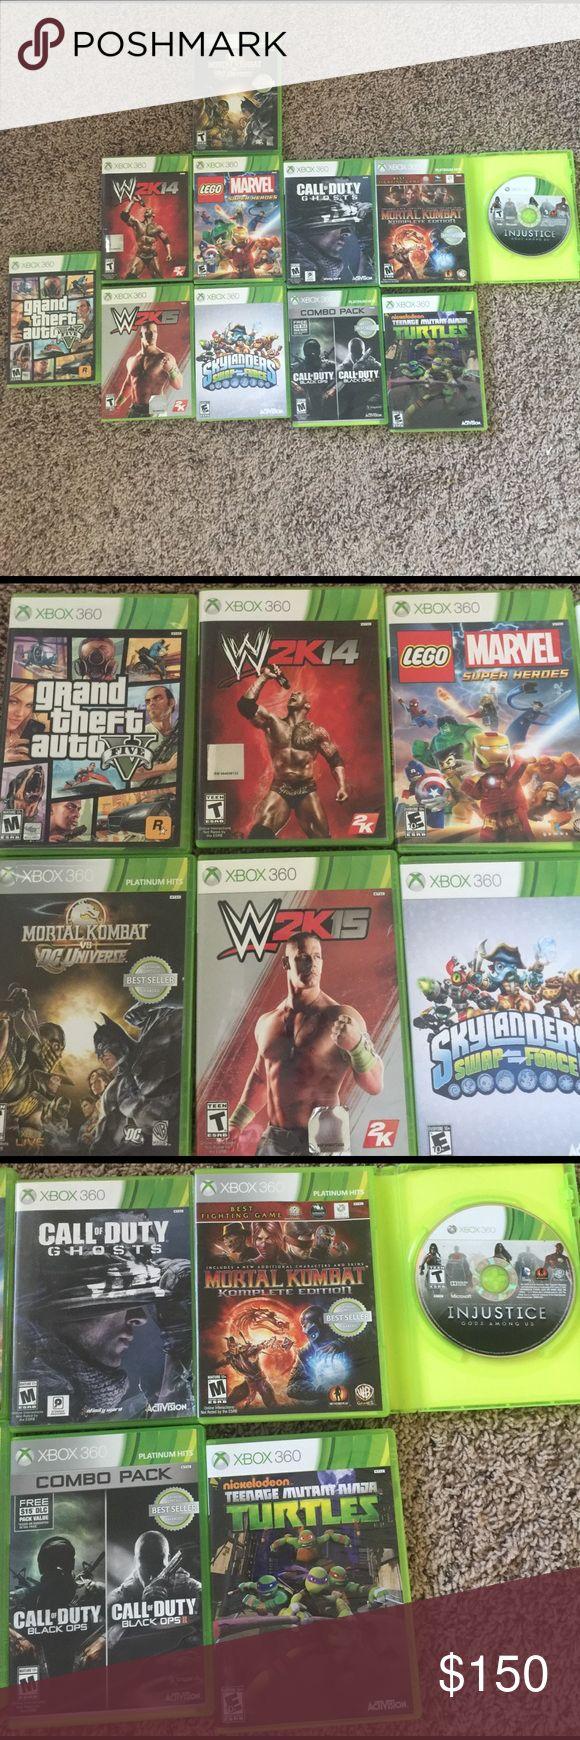 Xbox 360 Games You Get 11 Games For The Xbox 360 A Few Are In